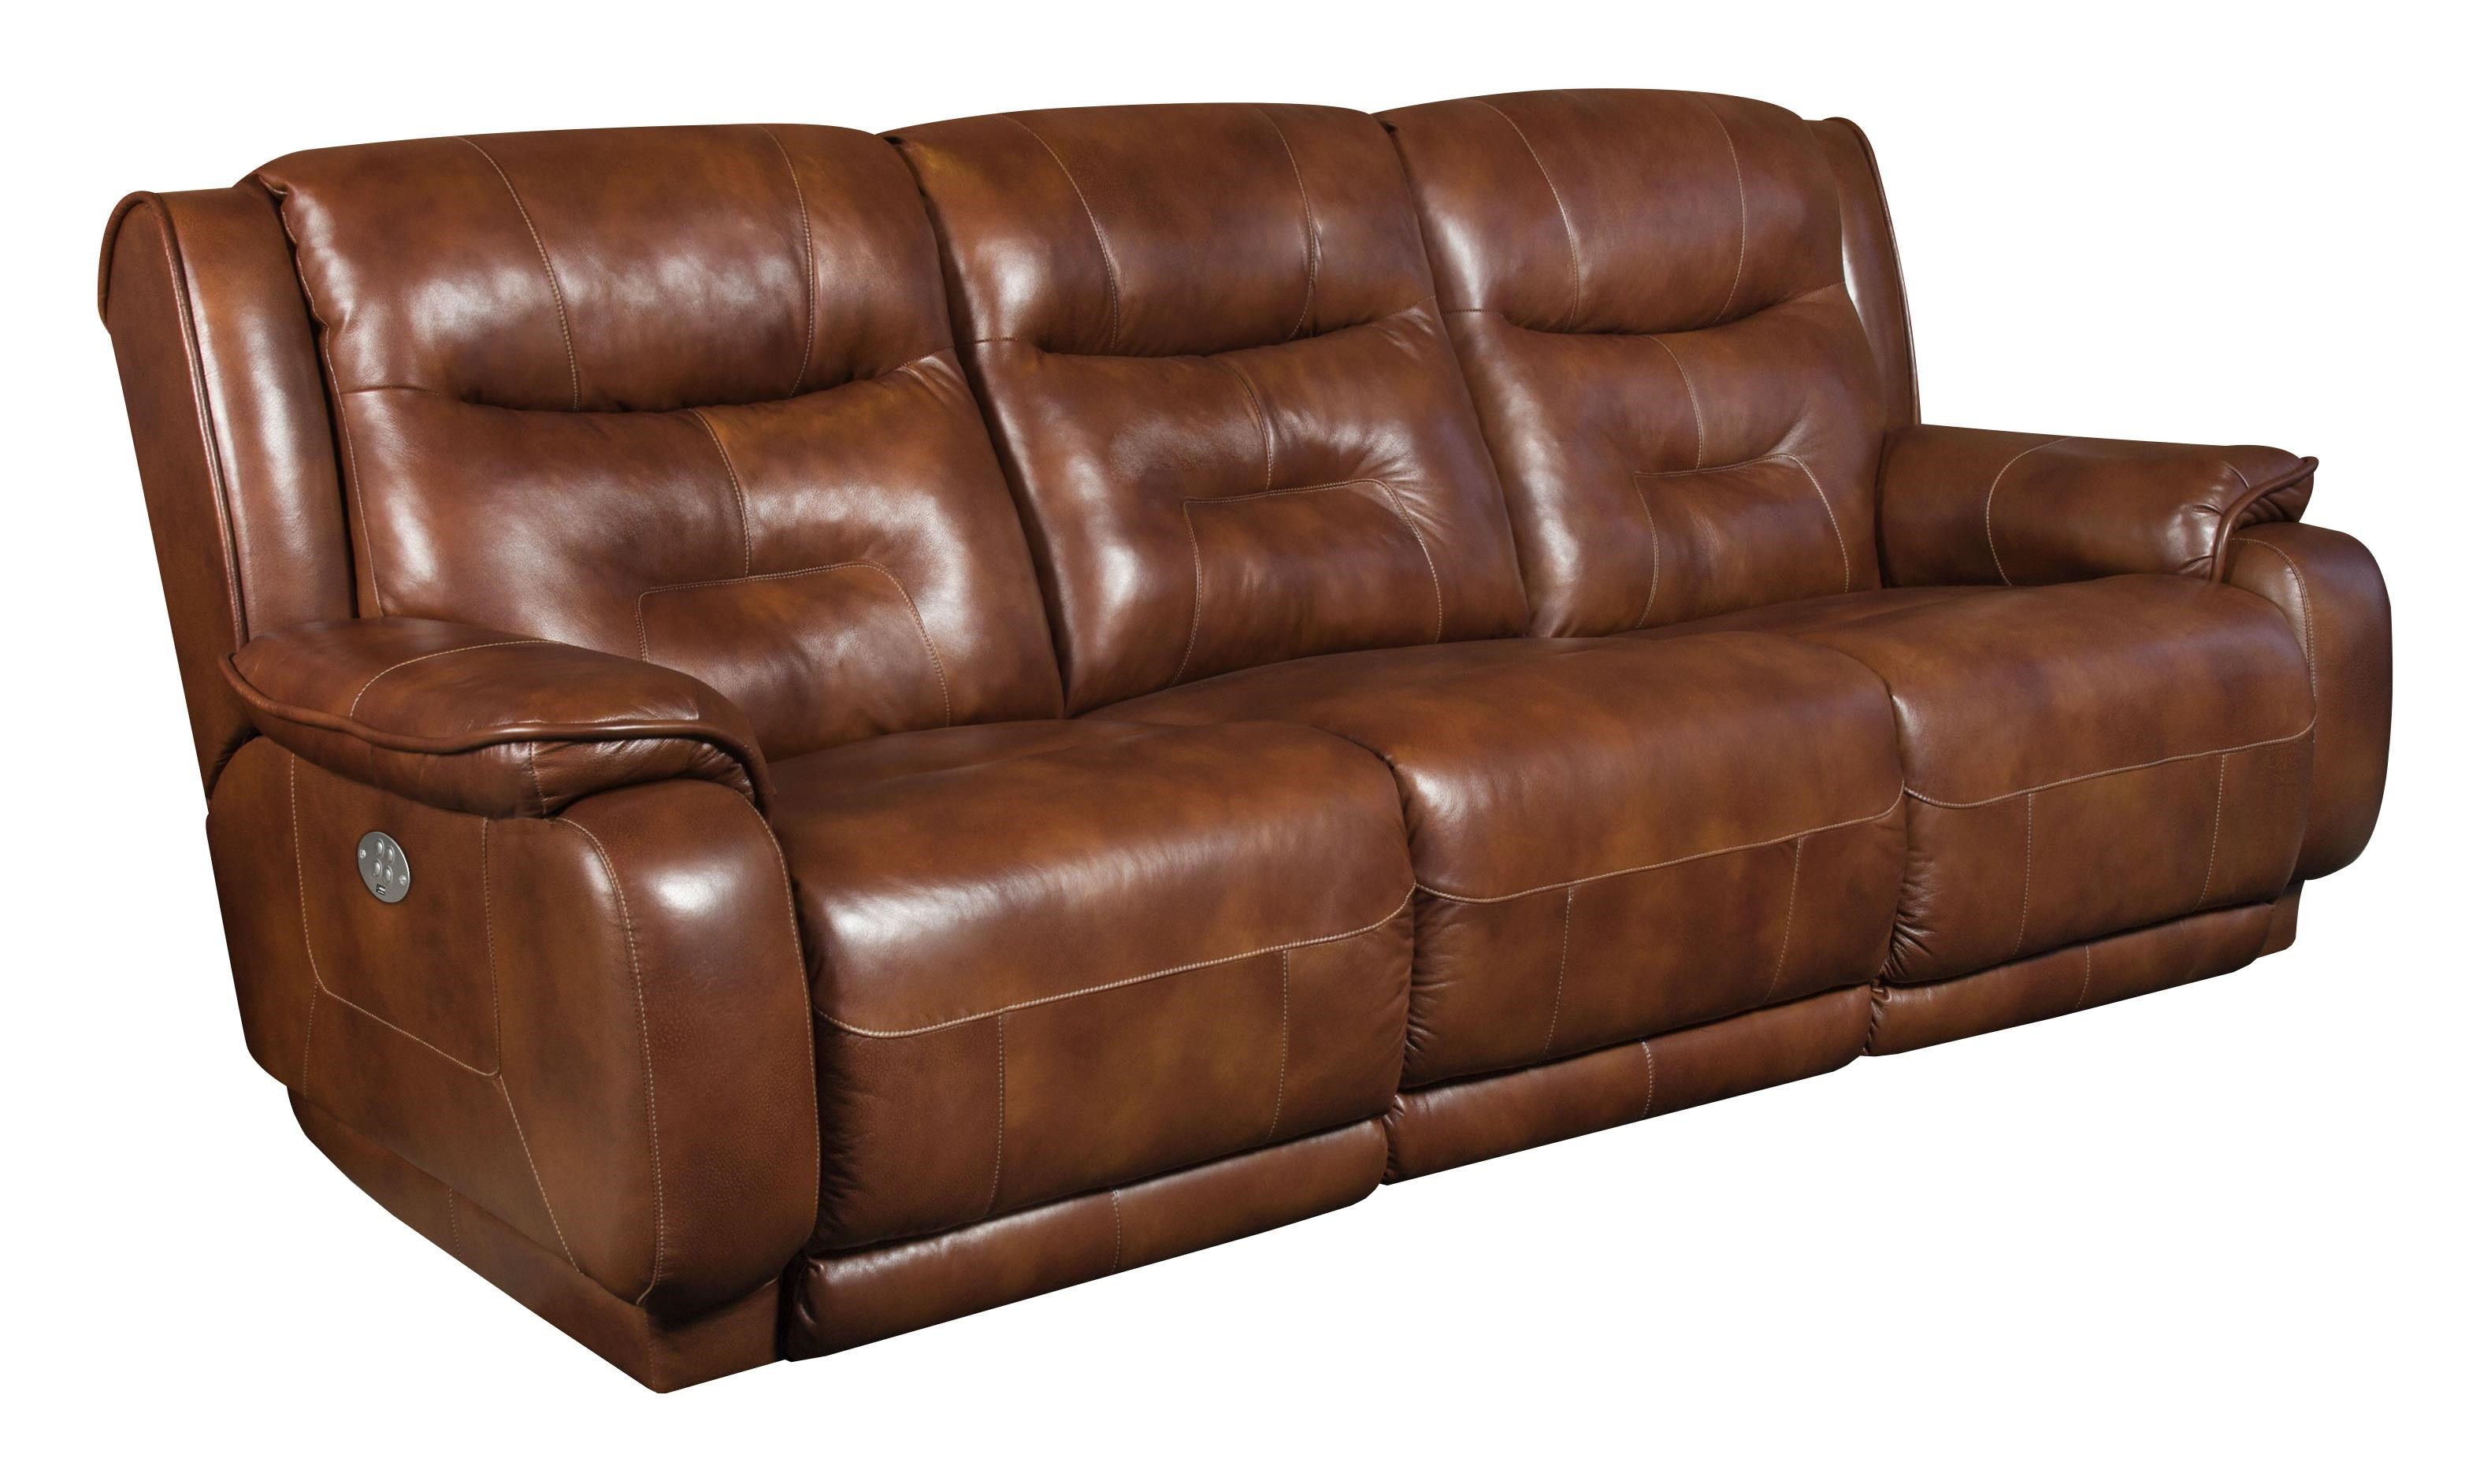 Southern Motion Crescent Double Reclining Sofa with Power Headrest  sc 1 st  Wayside Furniture & Southern Motion Crescent Double Reclining Sofa with Power Headrest ... islam-shia.org